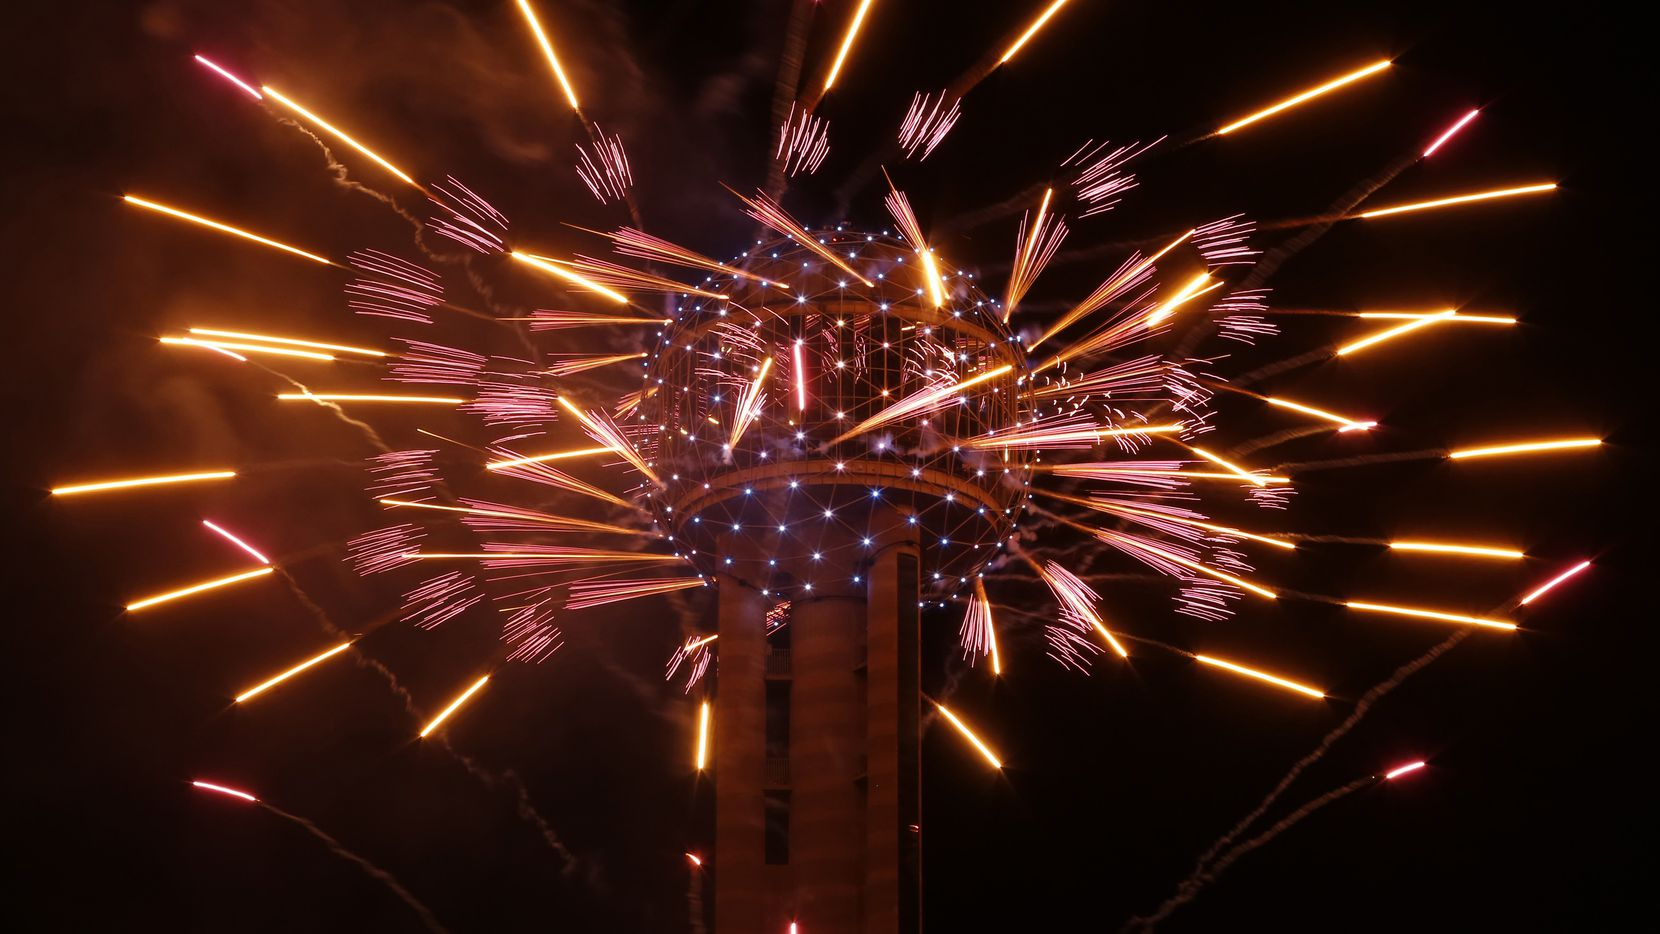 Fireworks will fly again from Reunion Tower as Dallas revelers ring in the new year. A number of venues offer good vantage points for viewing the show.